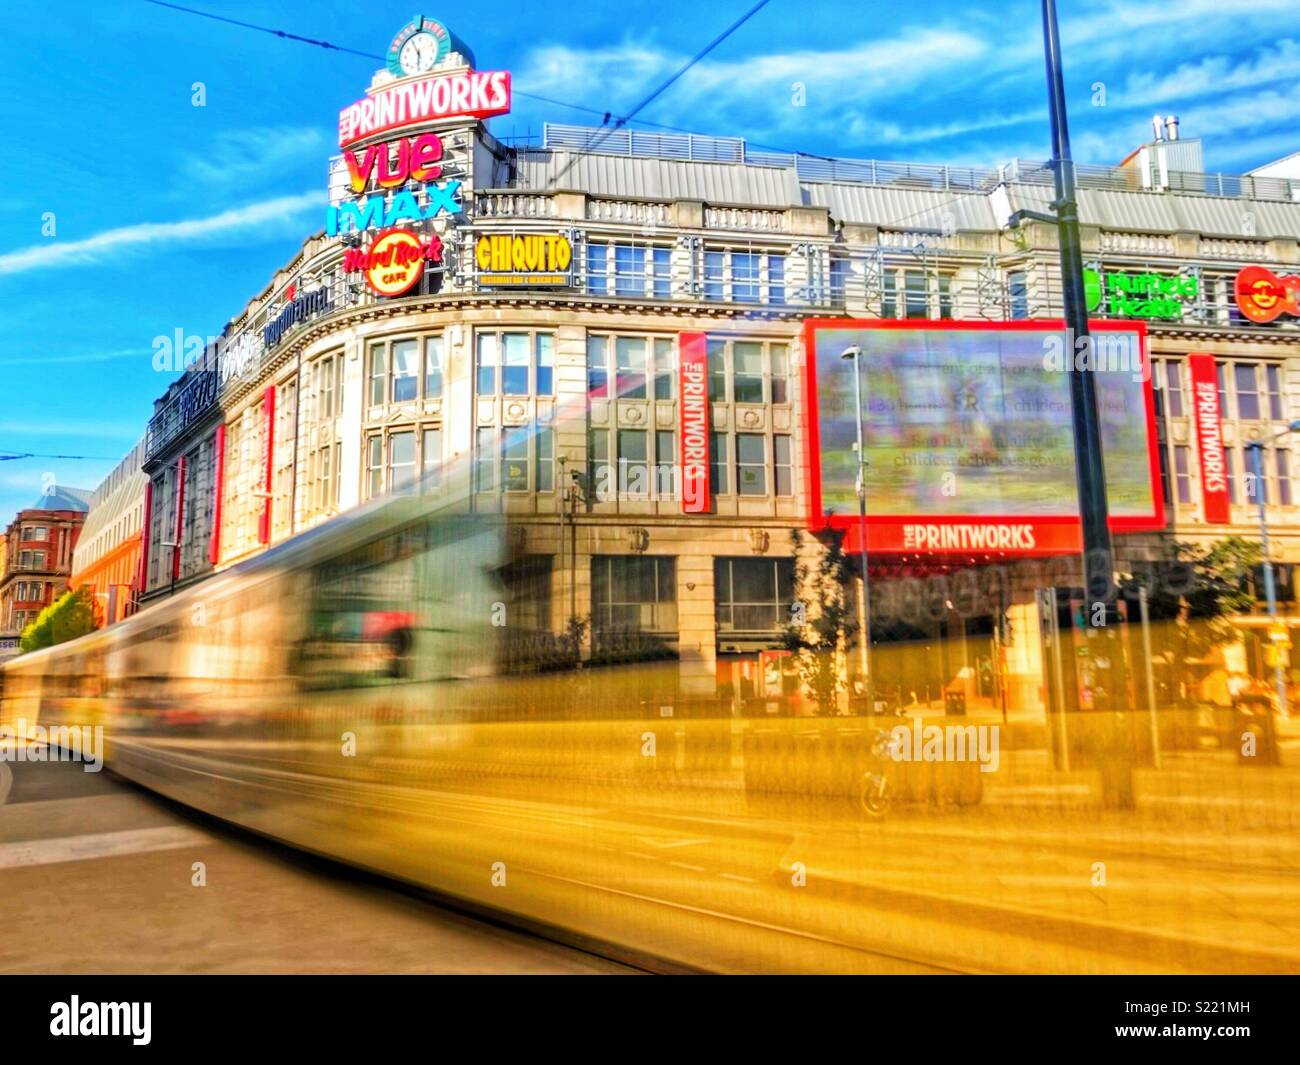 Manchester Printworks - Stock Image